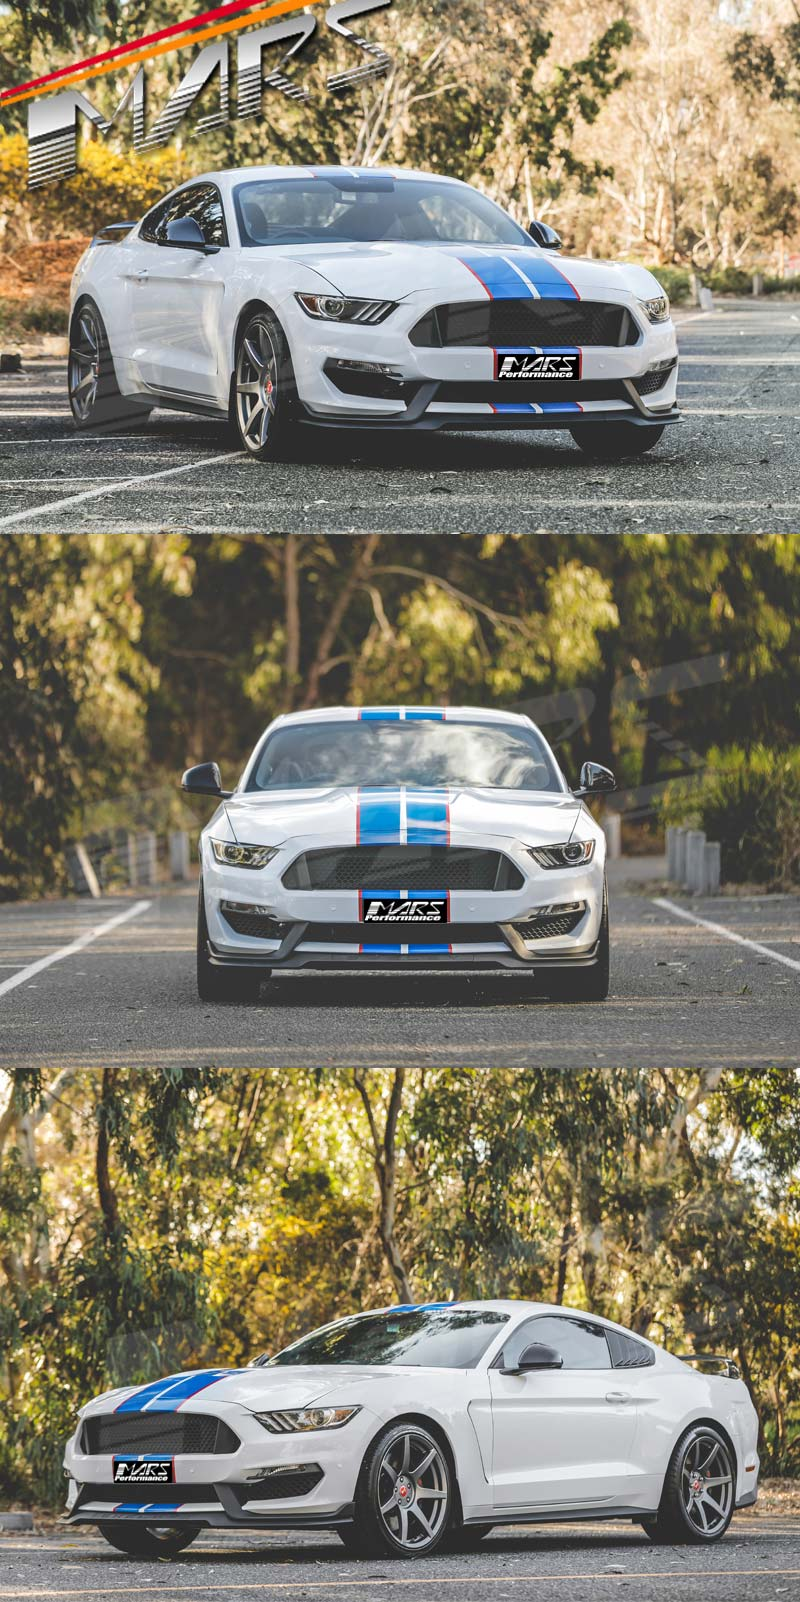 Used Mustang Parts >> Shelby GT350 Style Front Bumper Bar Body Kits for Ford ...